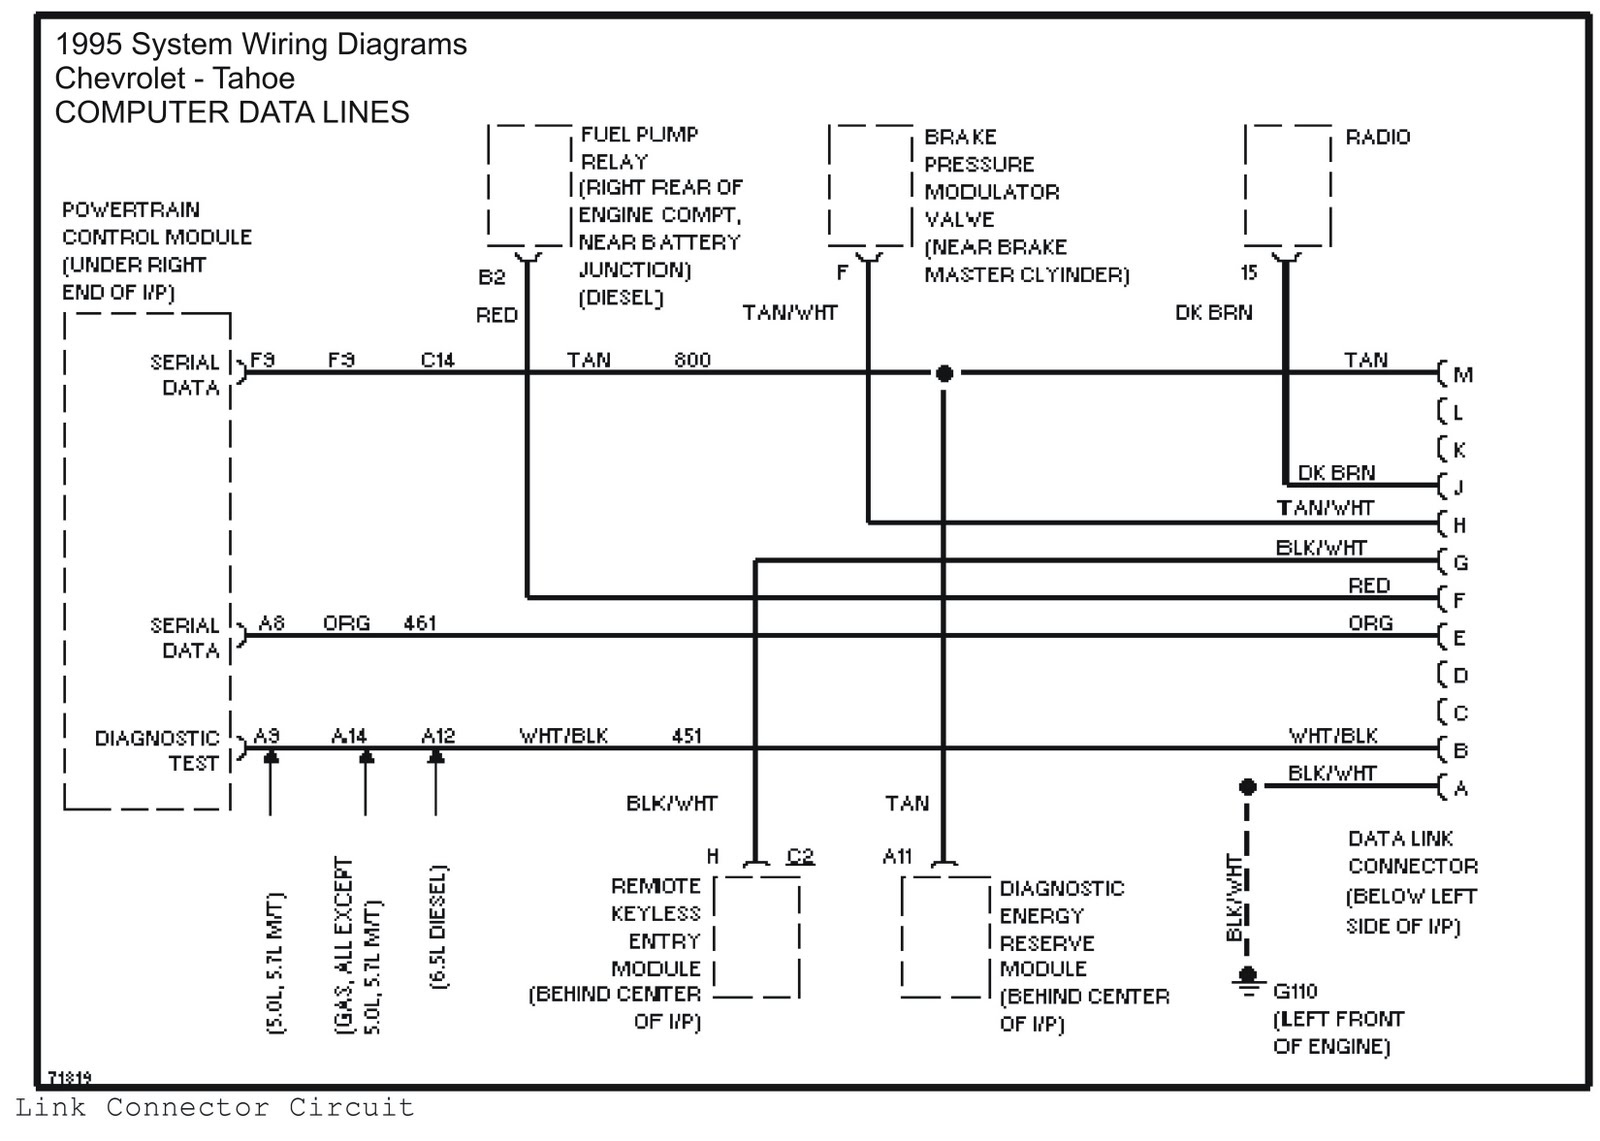 system wiring diagrams chevrolet tahoe computer data lines 1995 system wiring diagrams chevrolet tahoe computer data lines data link connector circuit